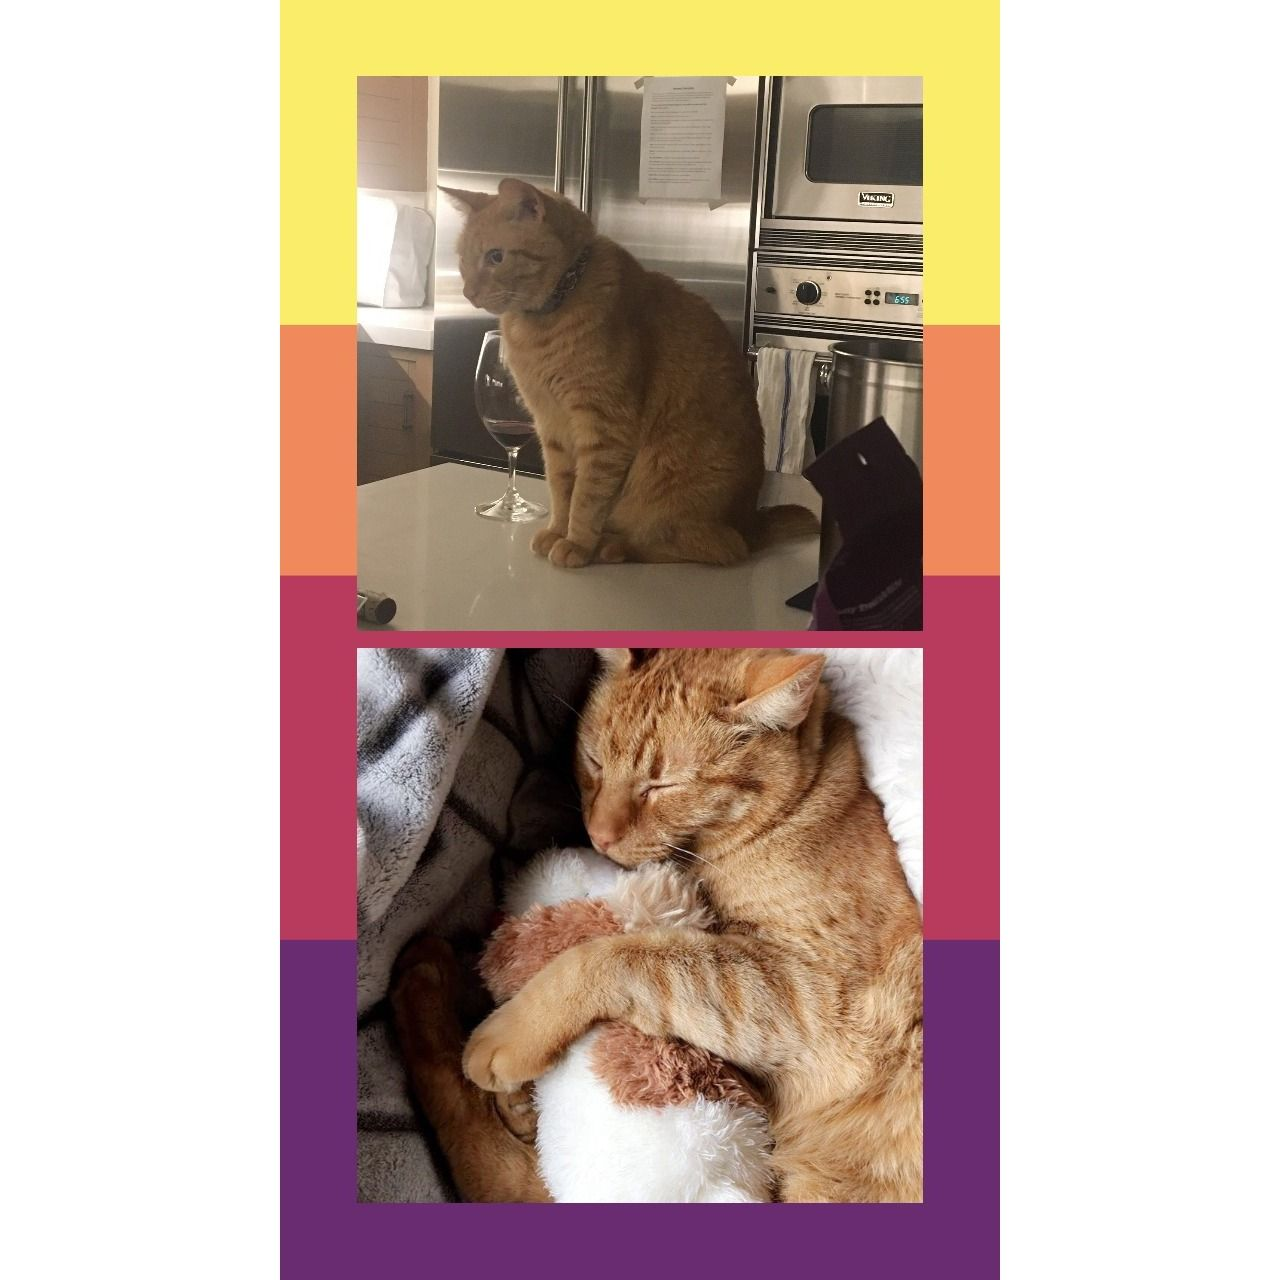 An example of a photo collage with a colored background for Instagram Story.